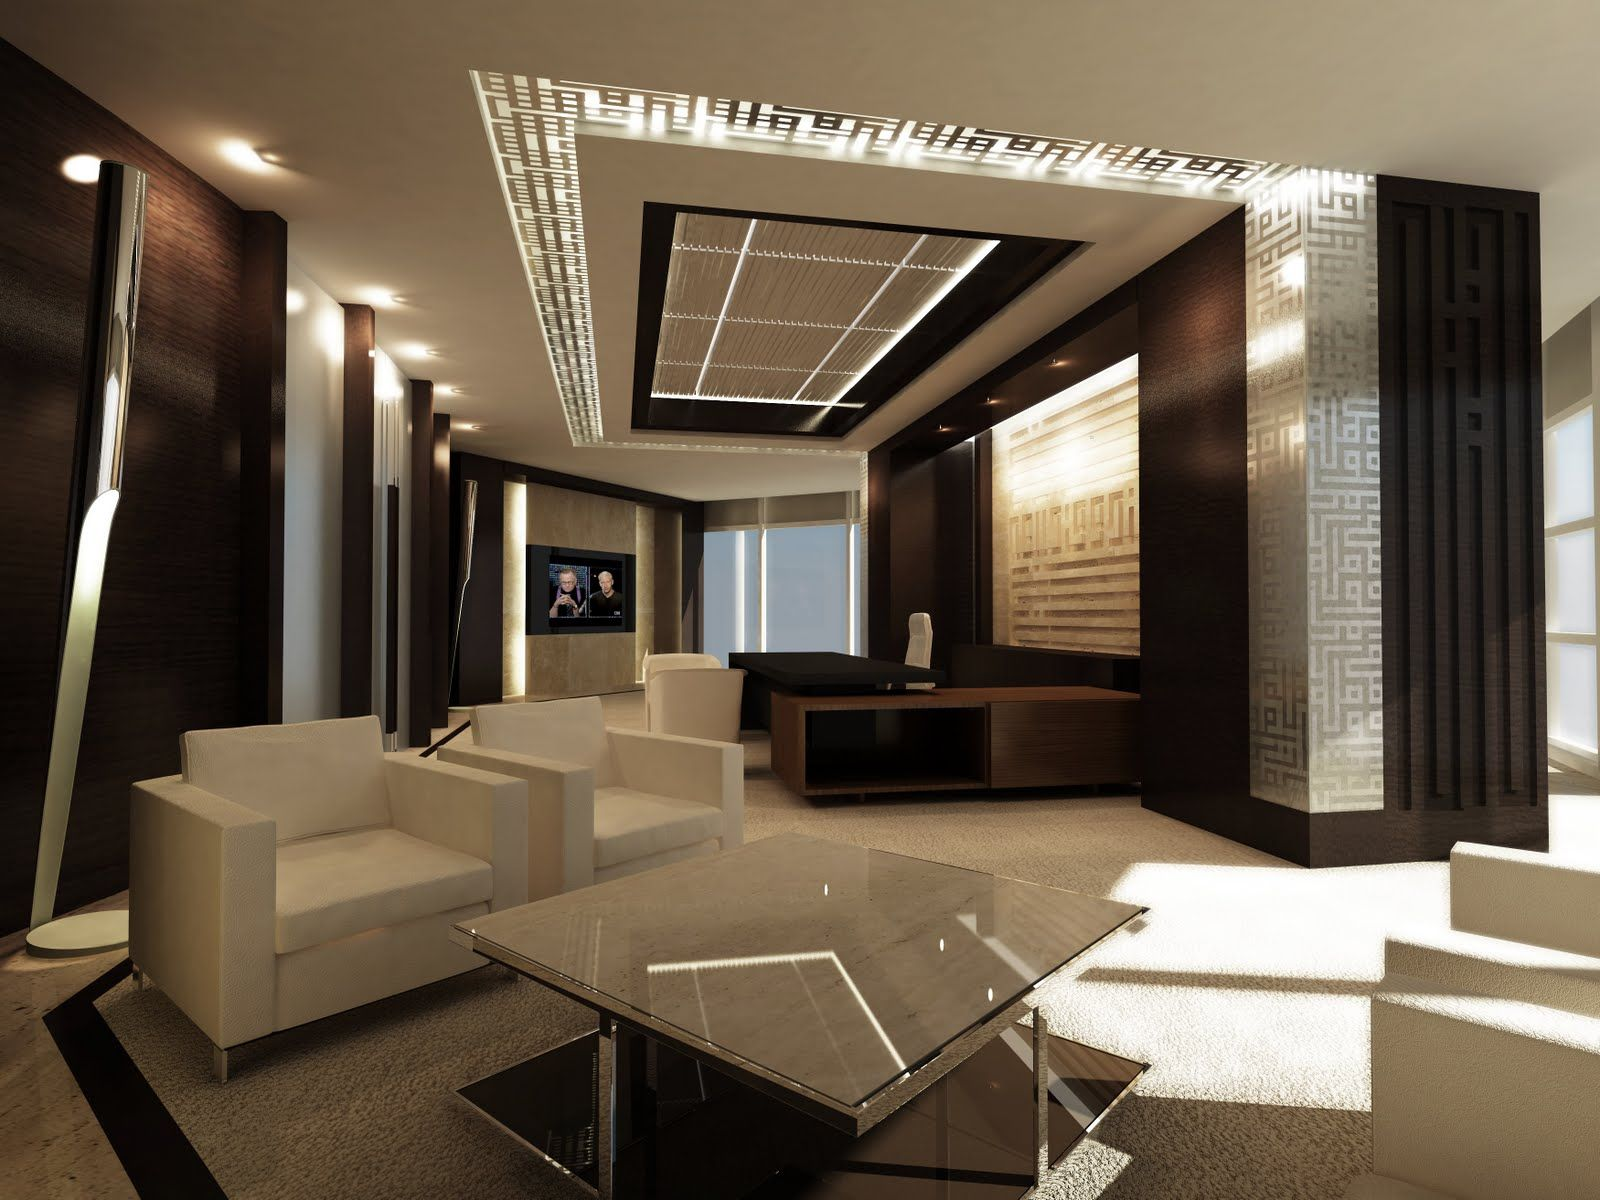 Executive Office Design Ideas remarkable traditional executive office design on office ideas with gorgeous ceo office design office designing ideas ceo office Find This Pin And More On Ideas Para Casa Tawazen Interior Design L L C Khalifa Fund Office